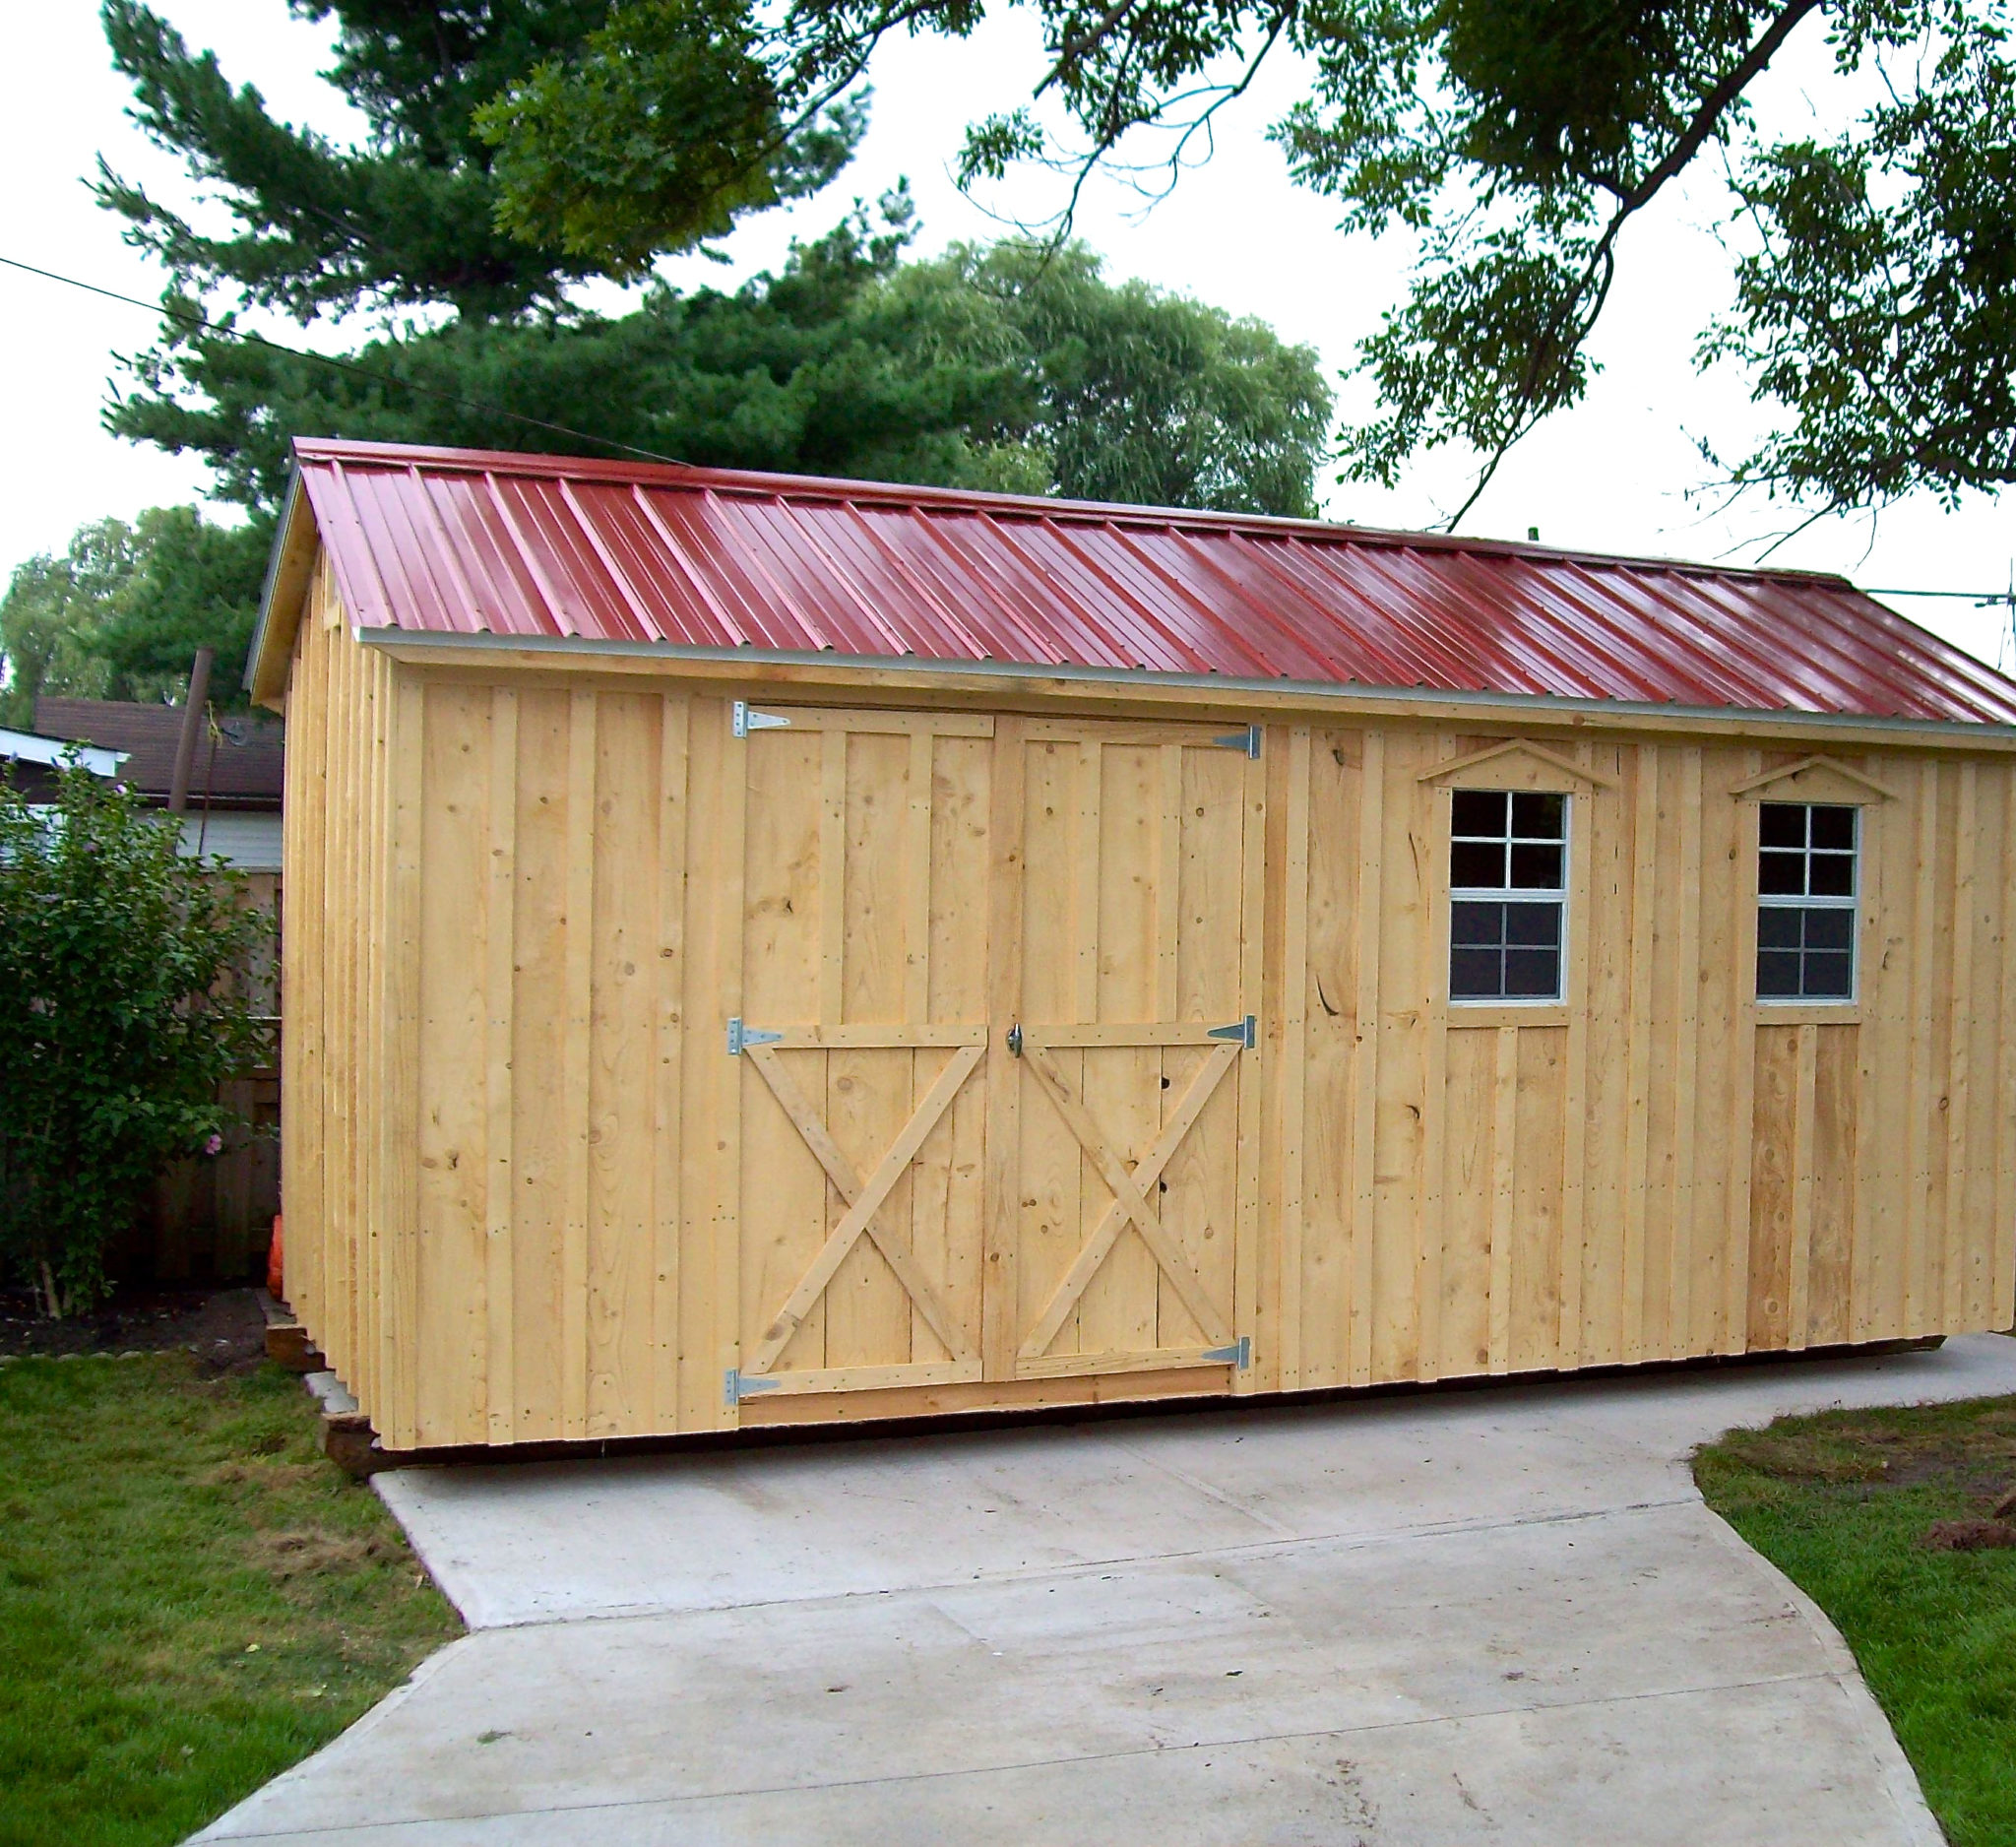 Amish Shed with red roof and double doors